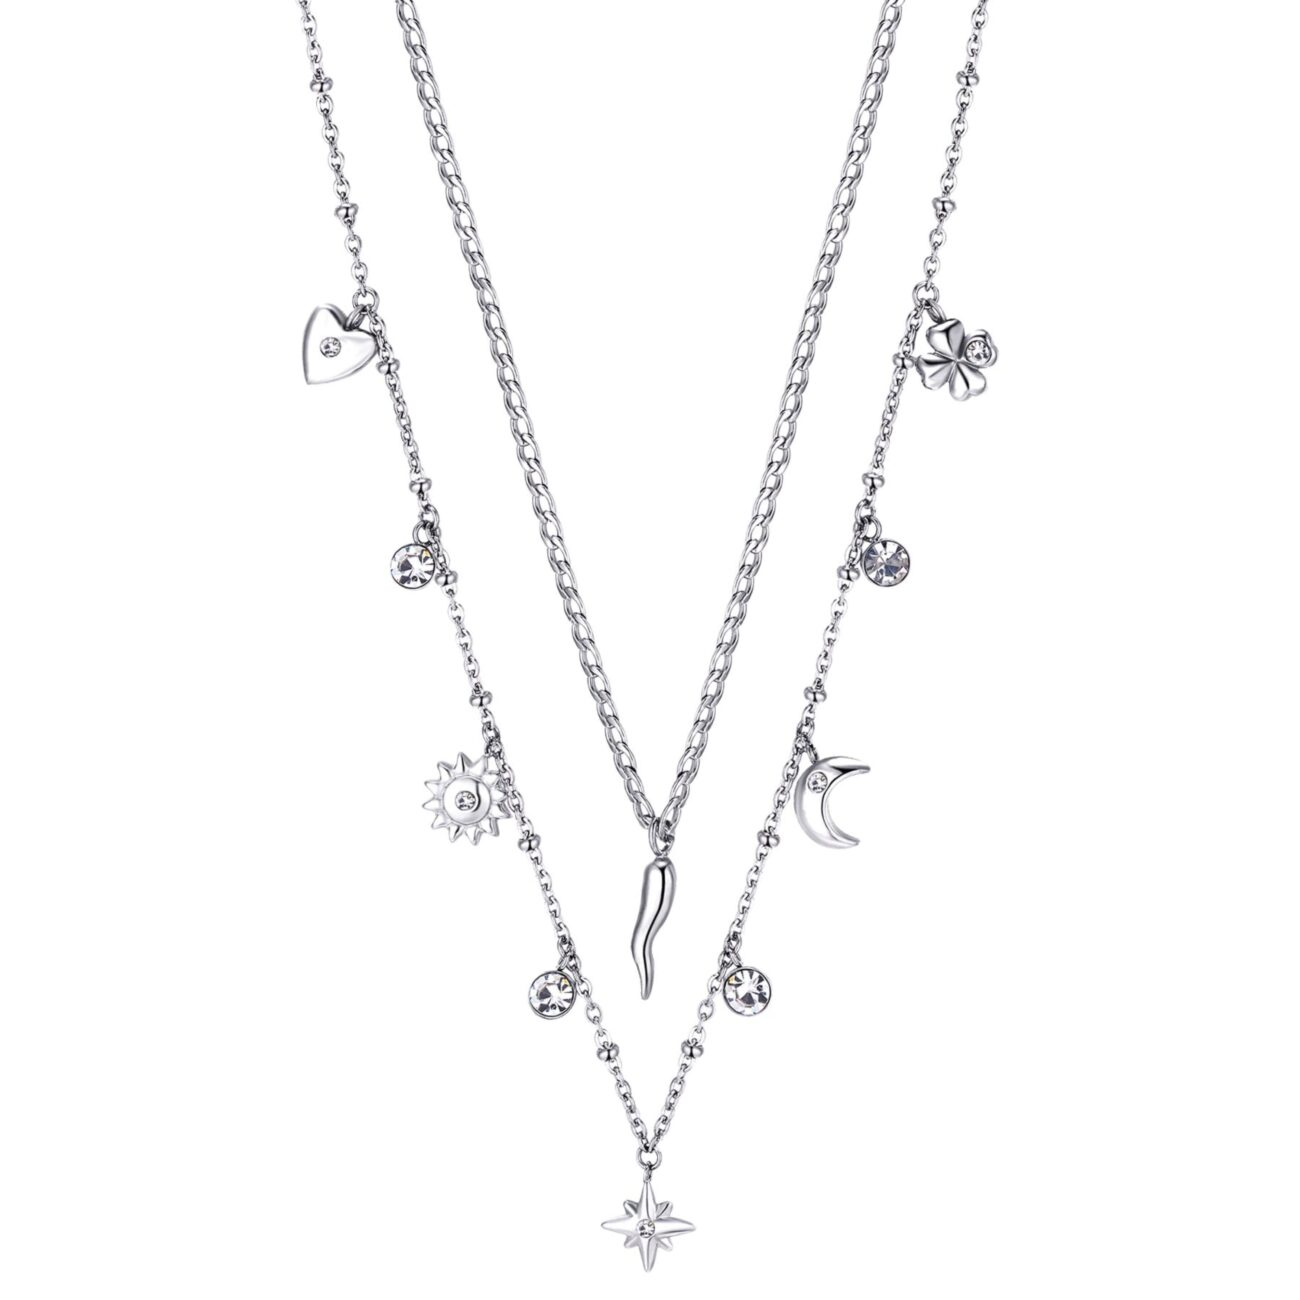 316L stainless steel double chain necklace with pendats and crystals.